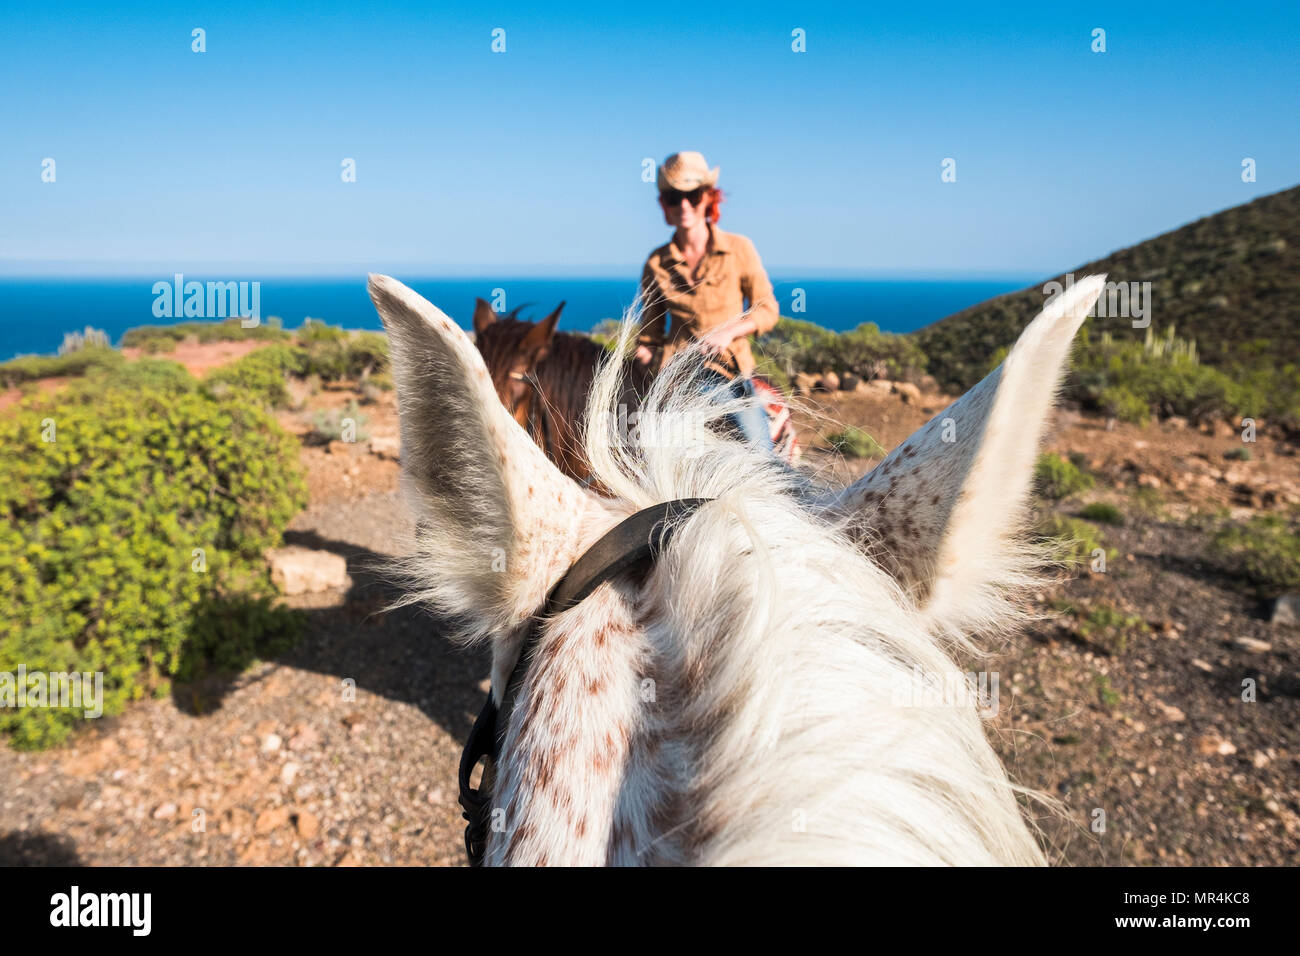 nice rare portrait of a beautiful girl ride a horse made by another rider on a white horse. funny and savage picture for a couple in contact with the  - Stock Image